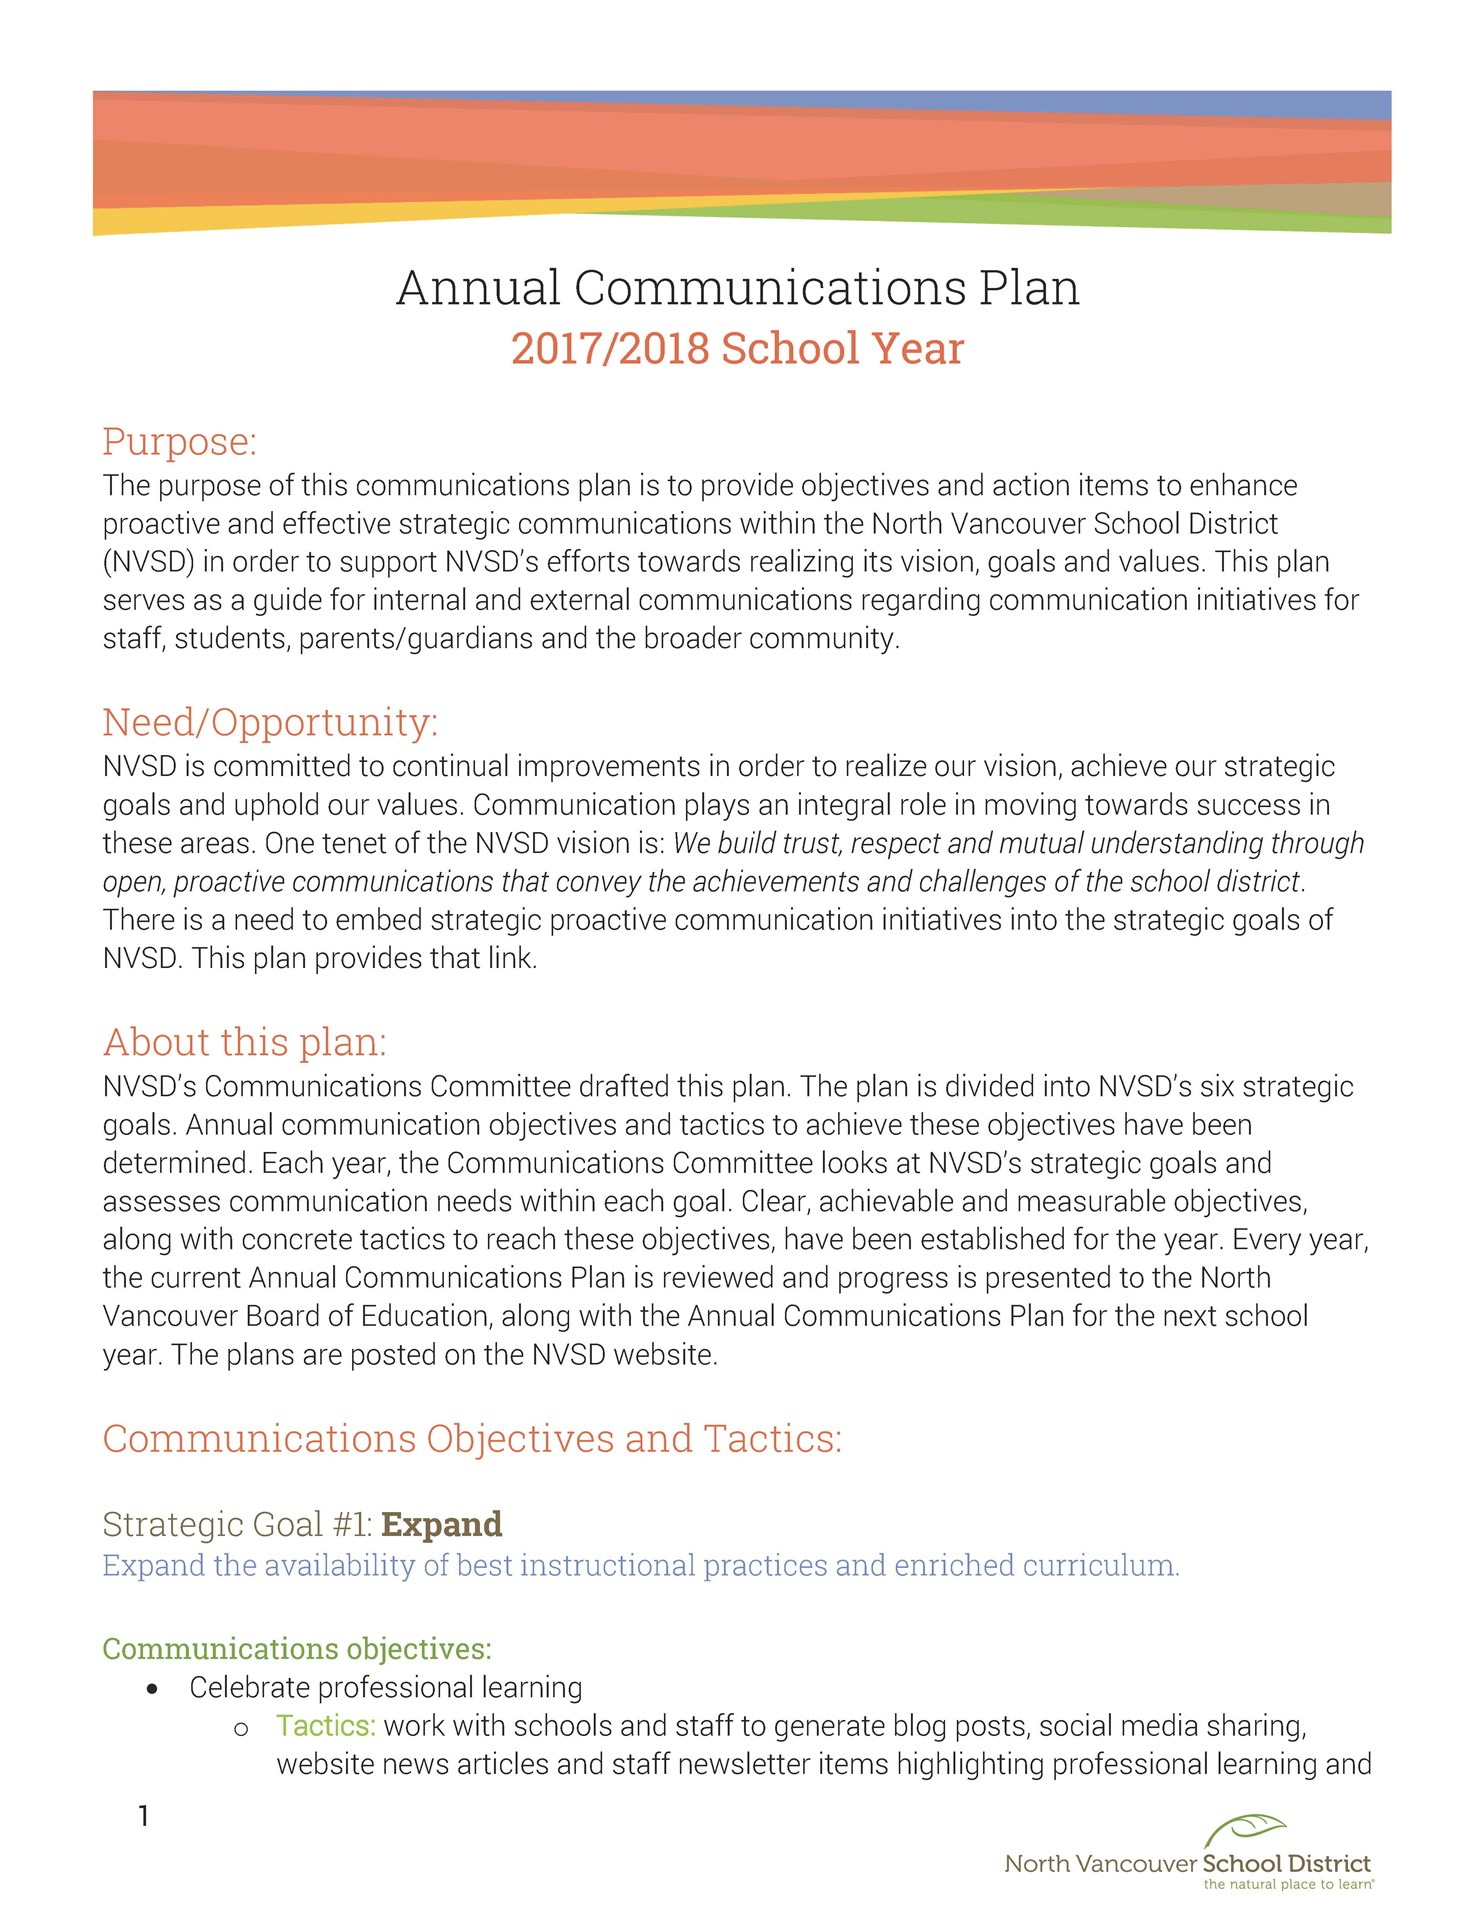 Annual Communications Plan - North Vancouver School District